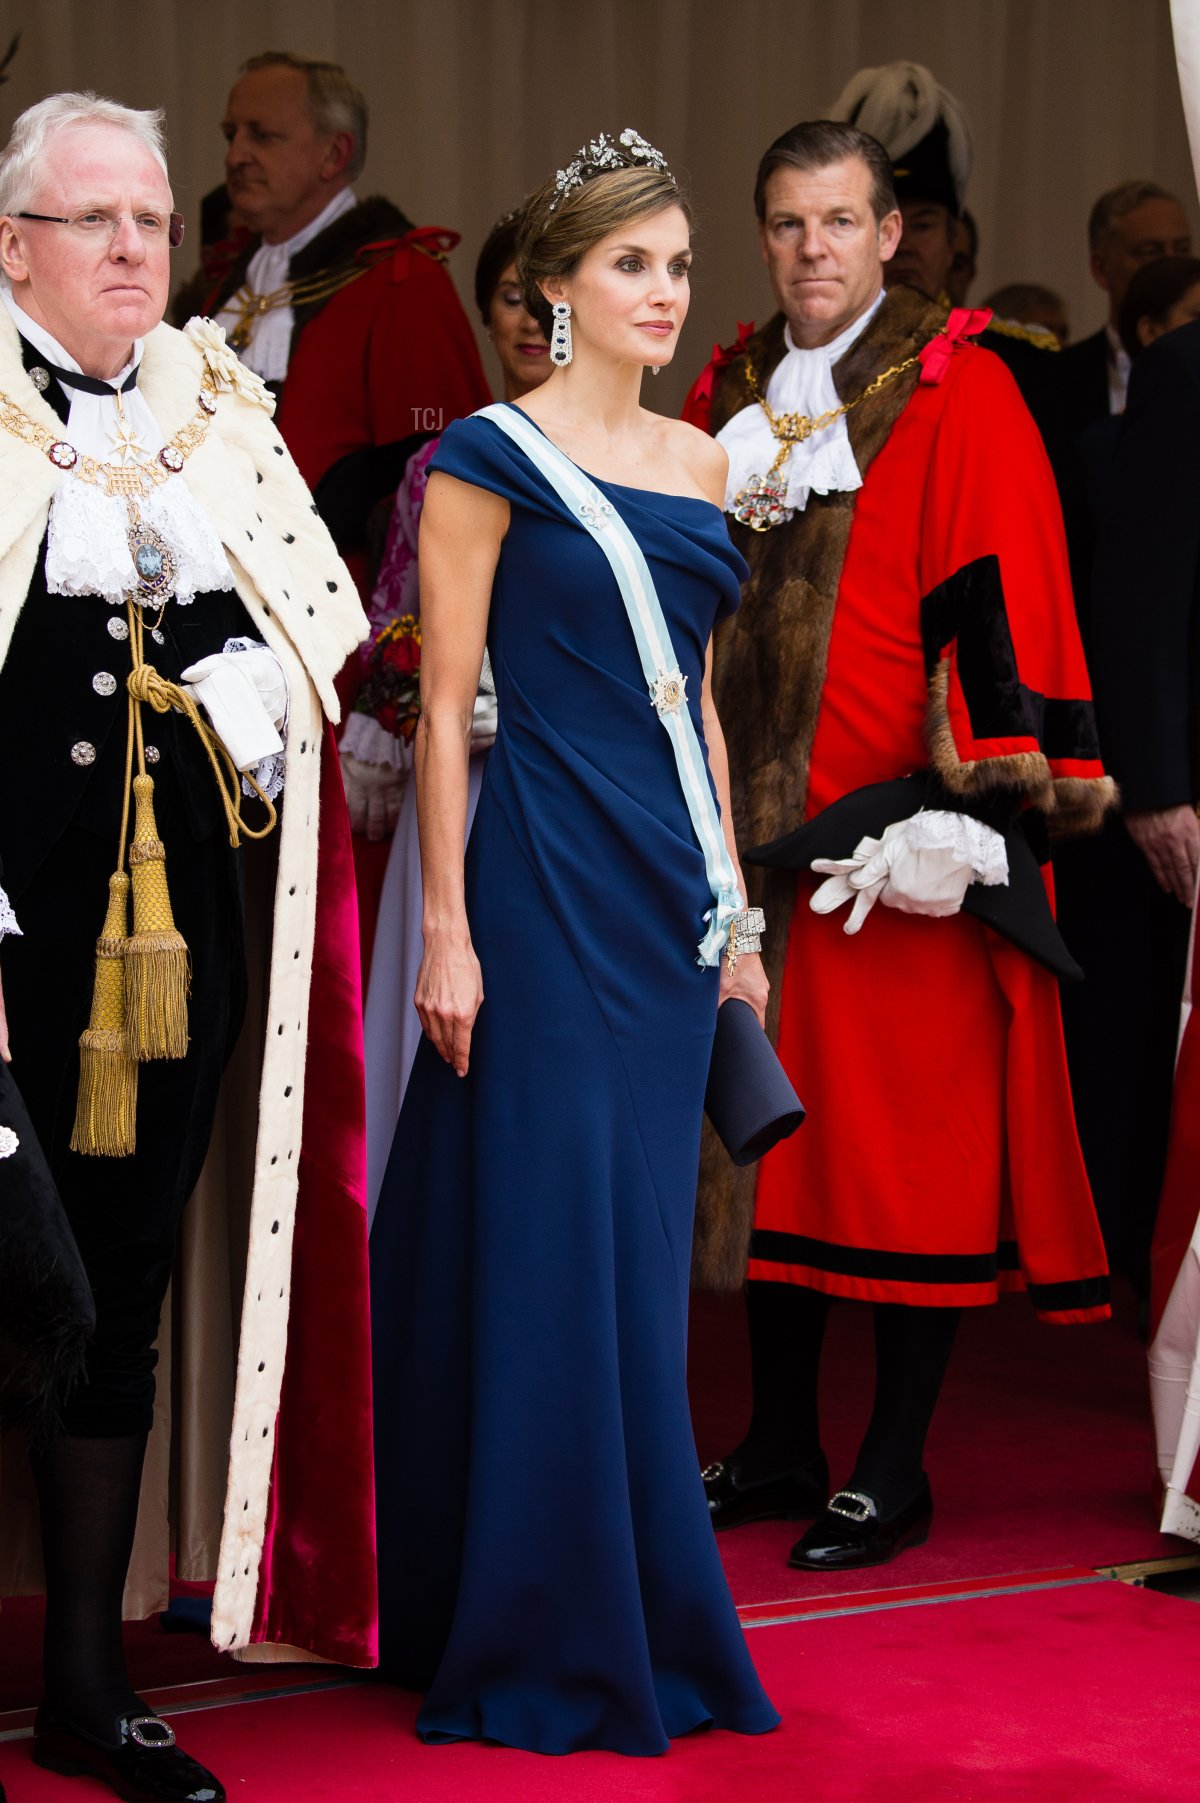 Queen Letizia of Spain attends the Lord Mayor's Banquet at the Guildhall during a State visit by the King and Queen of Spain on July 13, 2017 in London, England